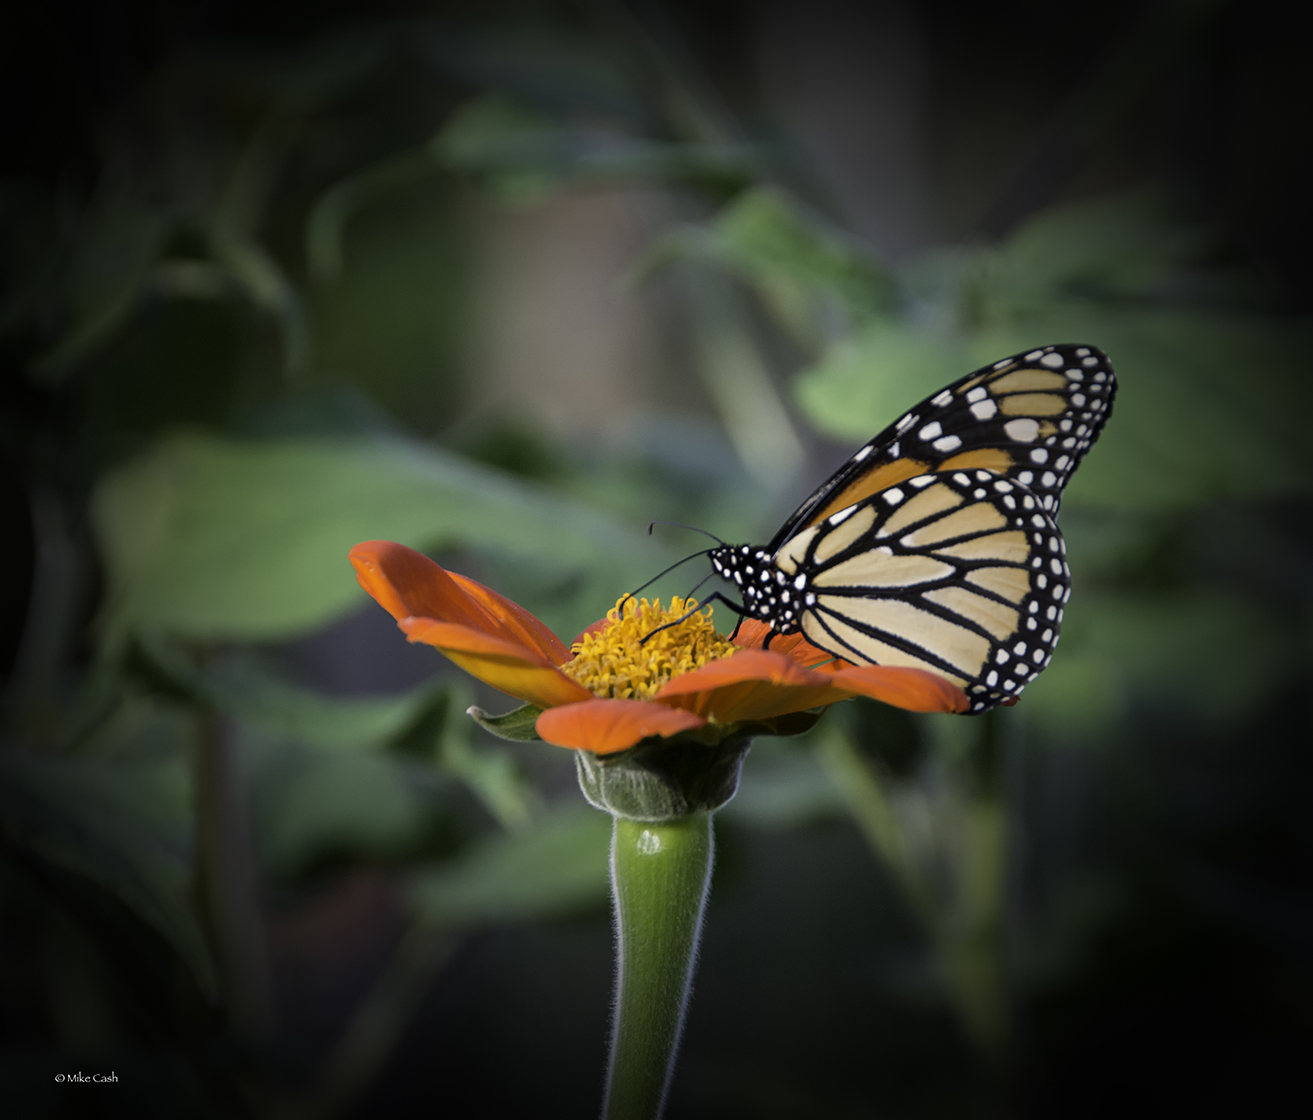 A still-blooming zinnia and a monarch butterfly in mid-October in Indiana? Here's proof!